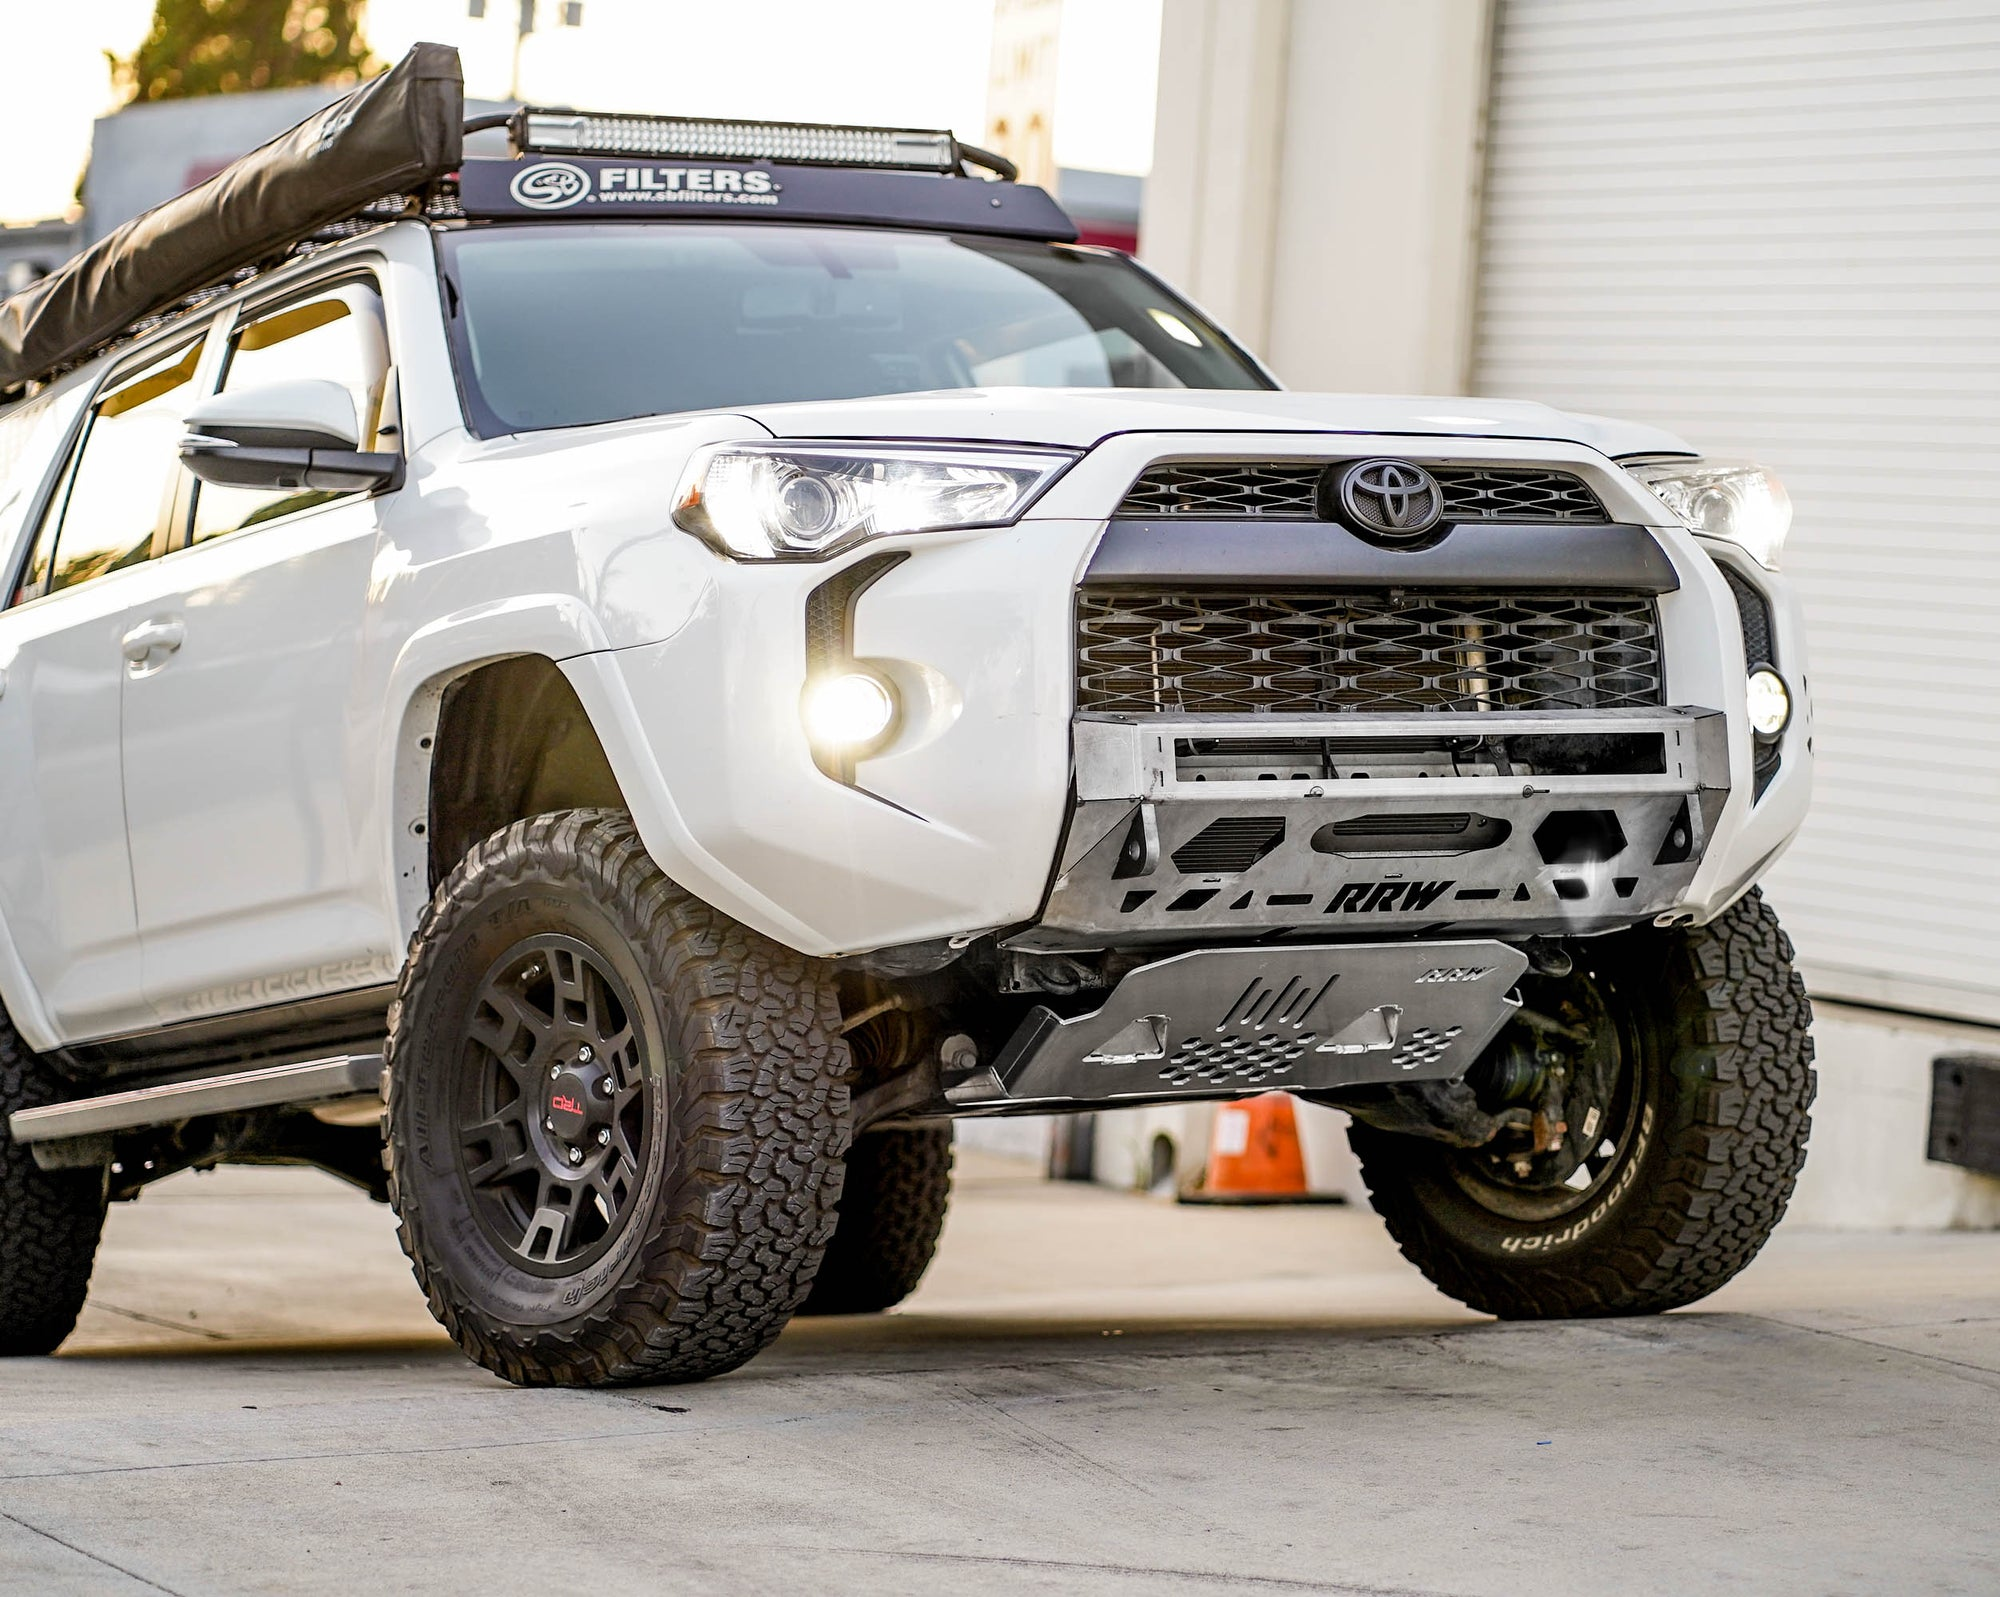 Offroad 4Runner Stealth Front Bumpers and Skid Plates